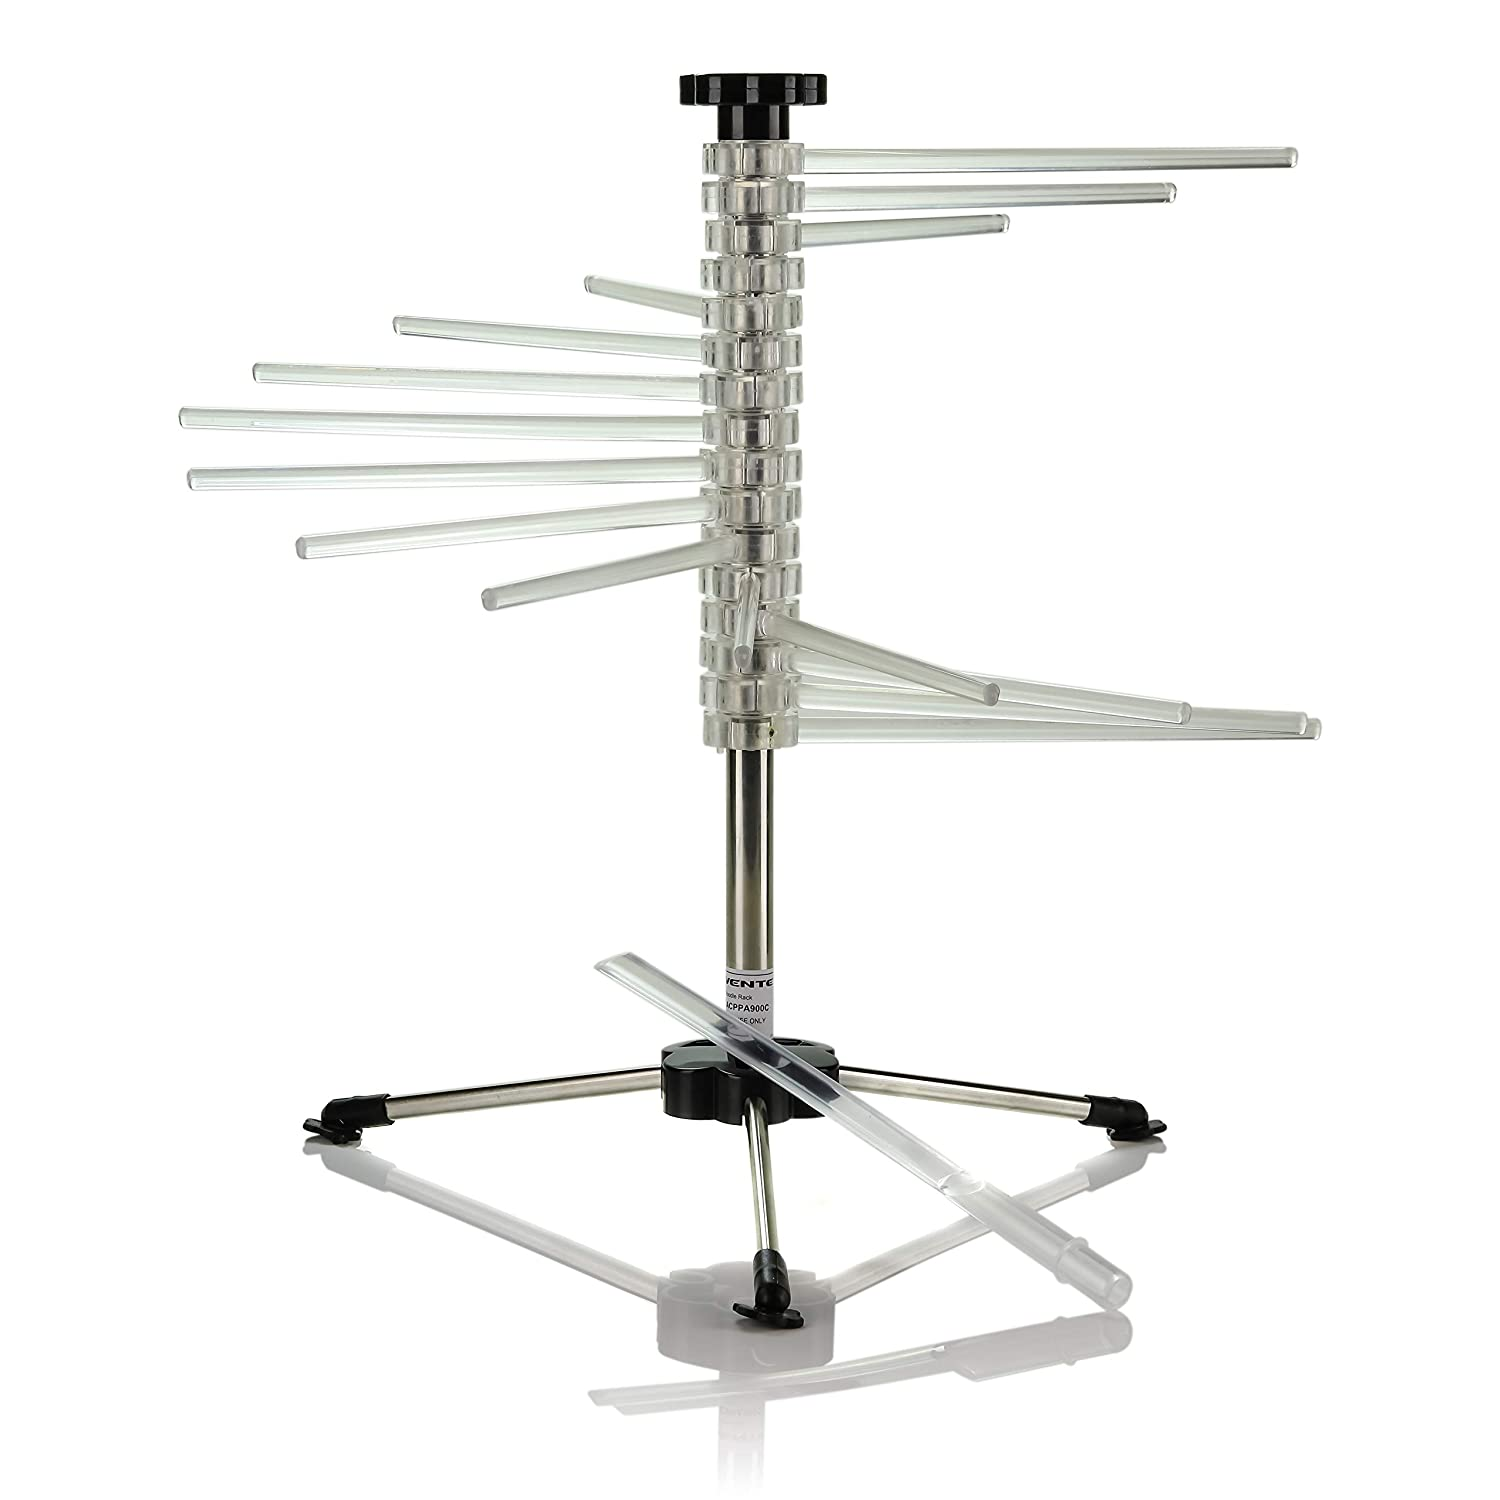 Ovente ACPPA900C Spiral Drying Rack with 16 Wand, BPA-Free Acrylic Rods, B pasta-makers